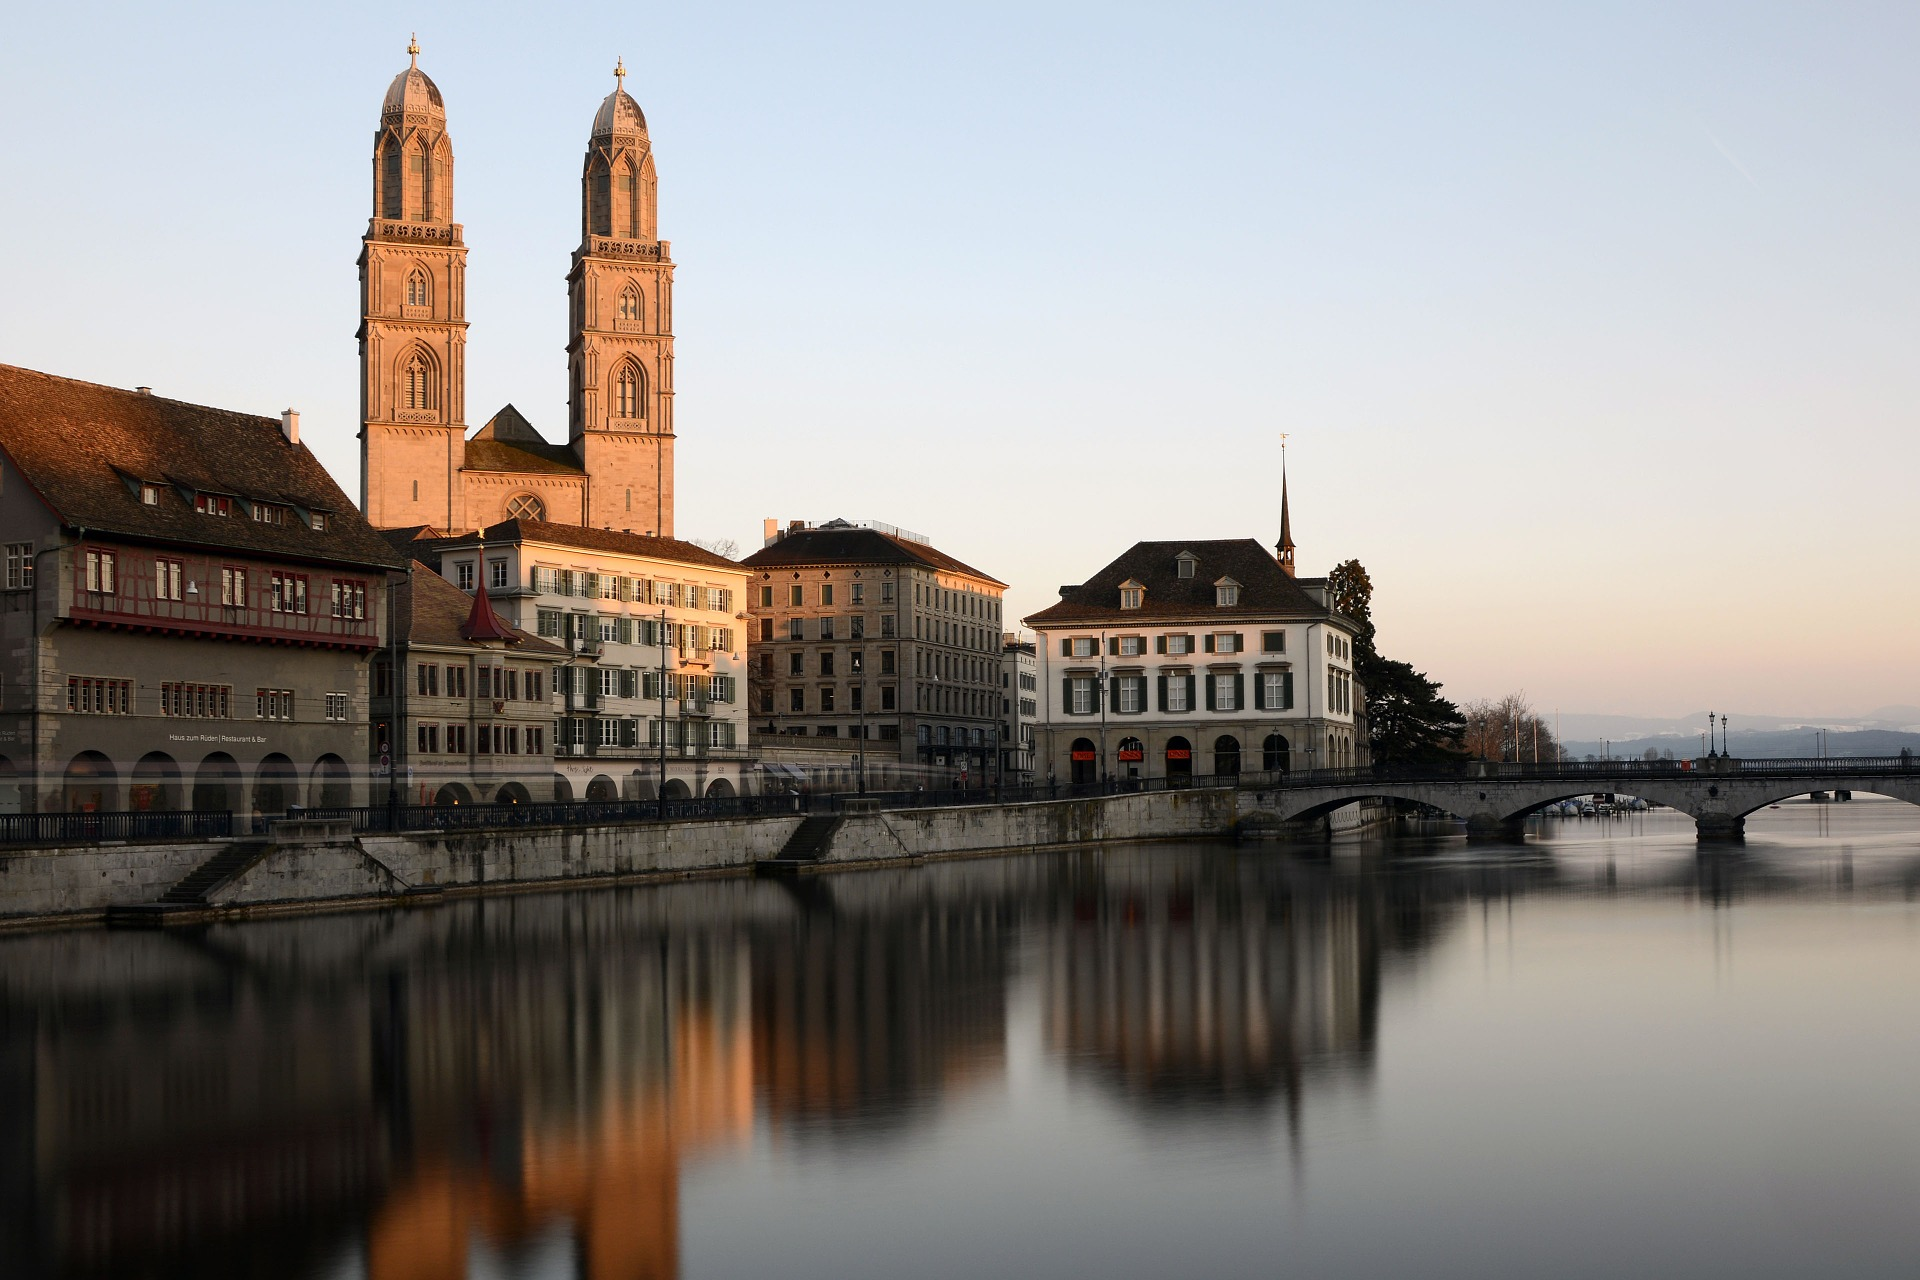 WHERE Are #SmartEvents Held? - All of our events currently take place in Zurich, Switzerland. Stay tuned for more locations (Milan, London, Munich, Berlin, and Frankfurt) and let us know where in the world you would like to see us.